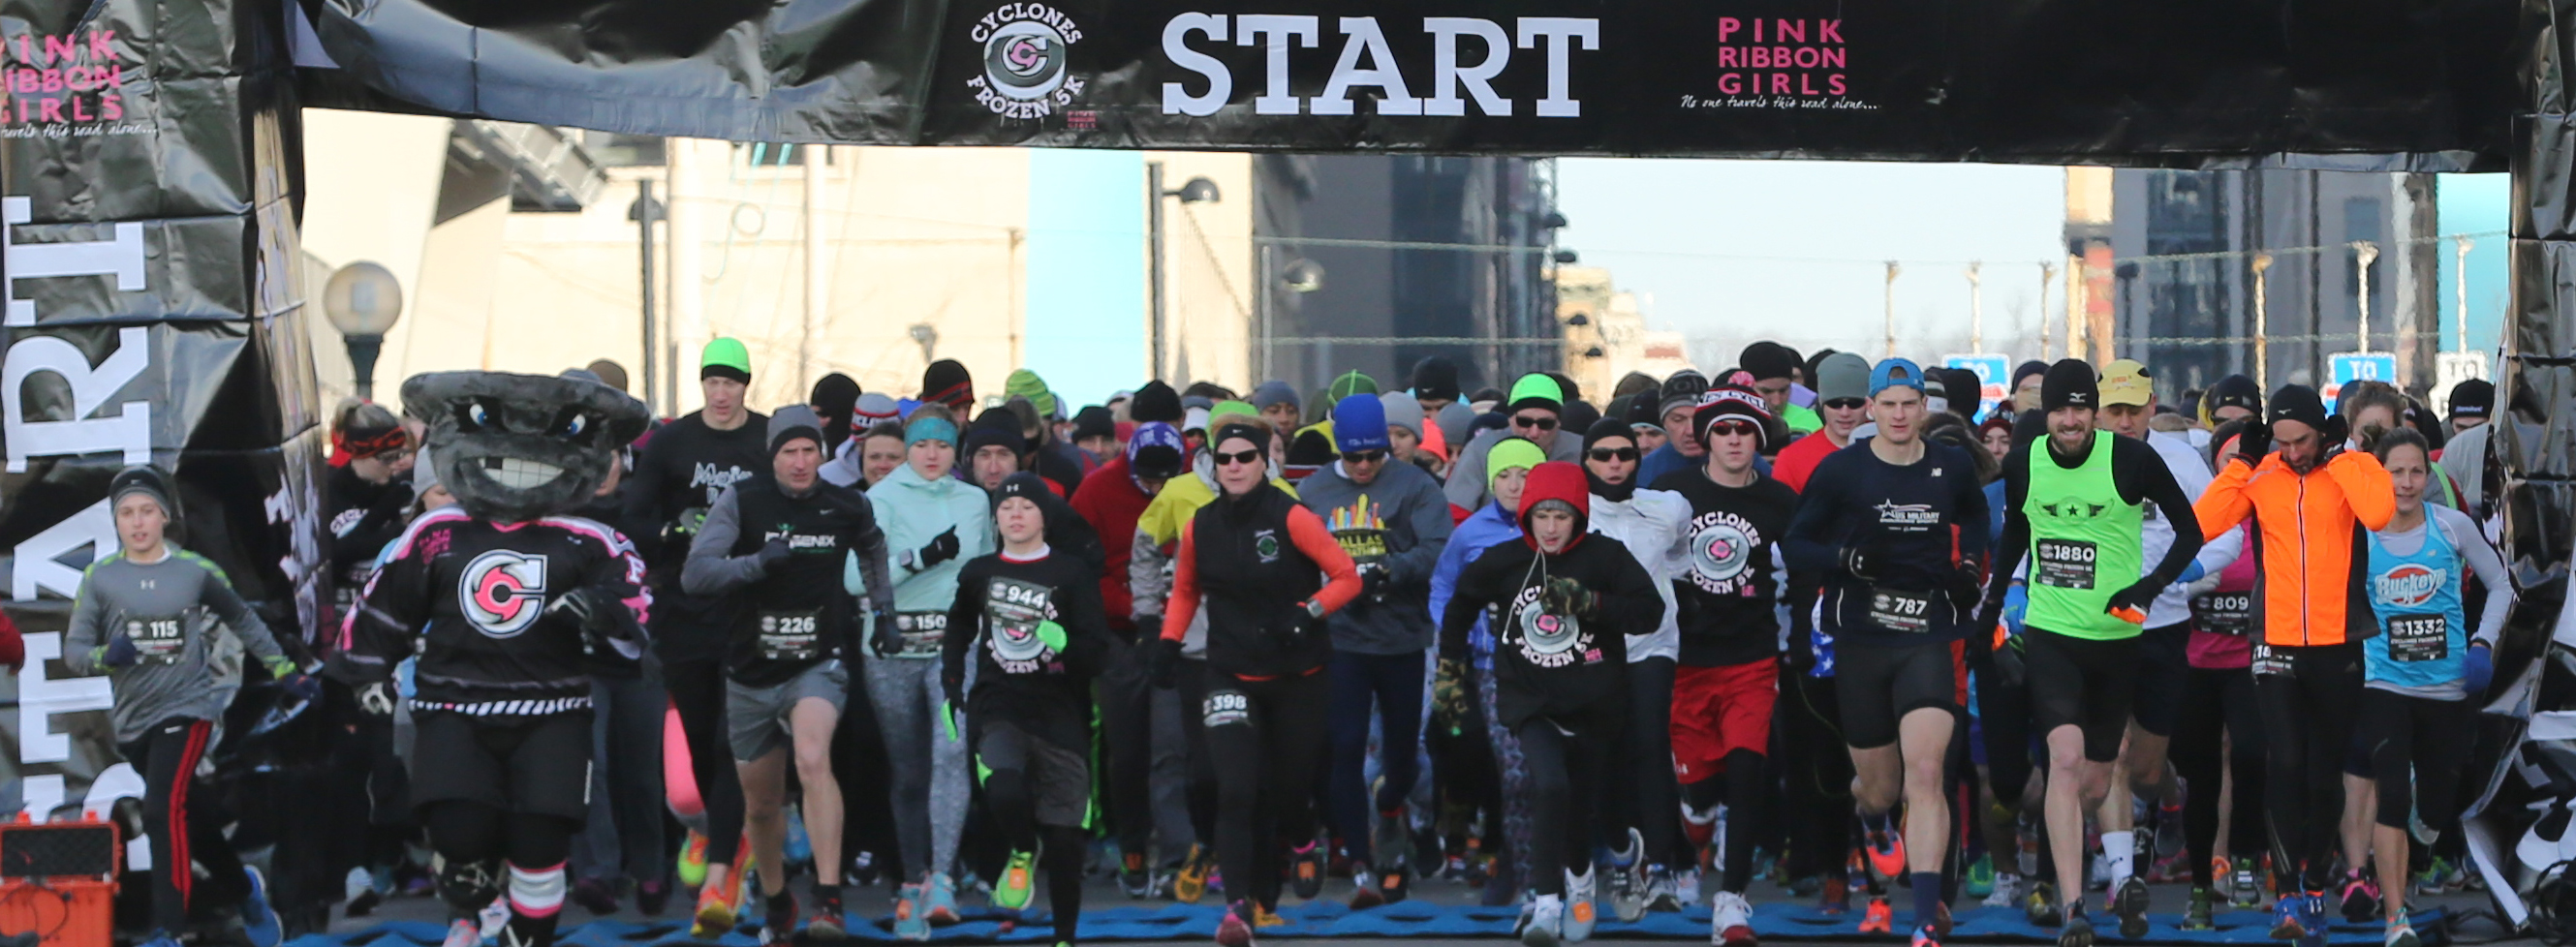 Cincinnati Cyclones Frozen 5k Run Walk